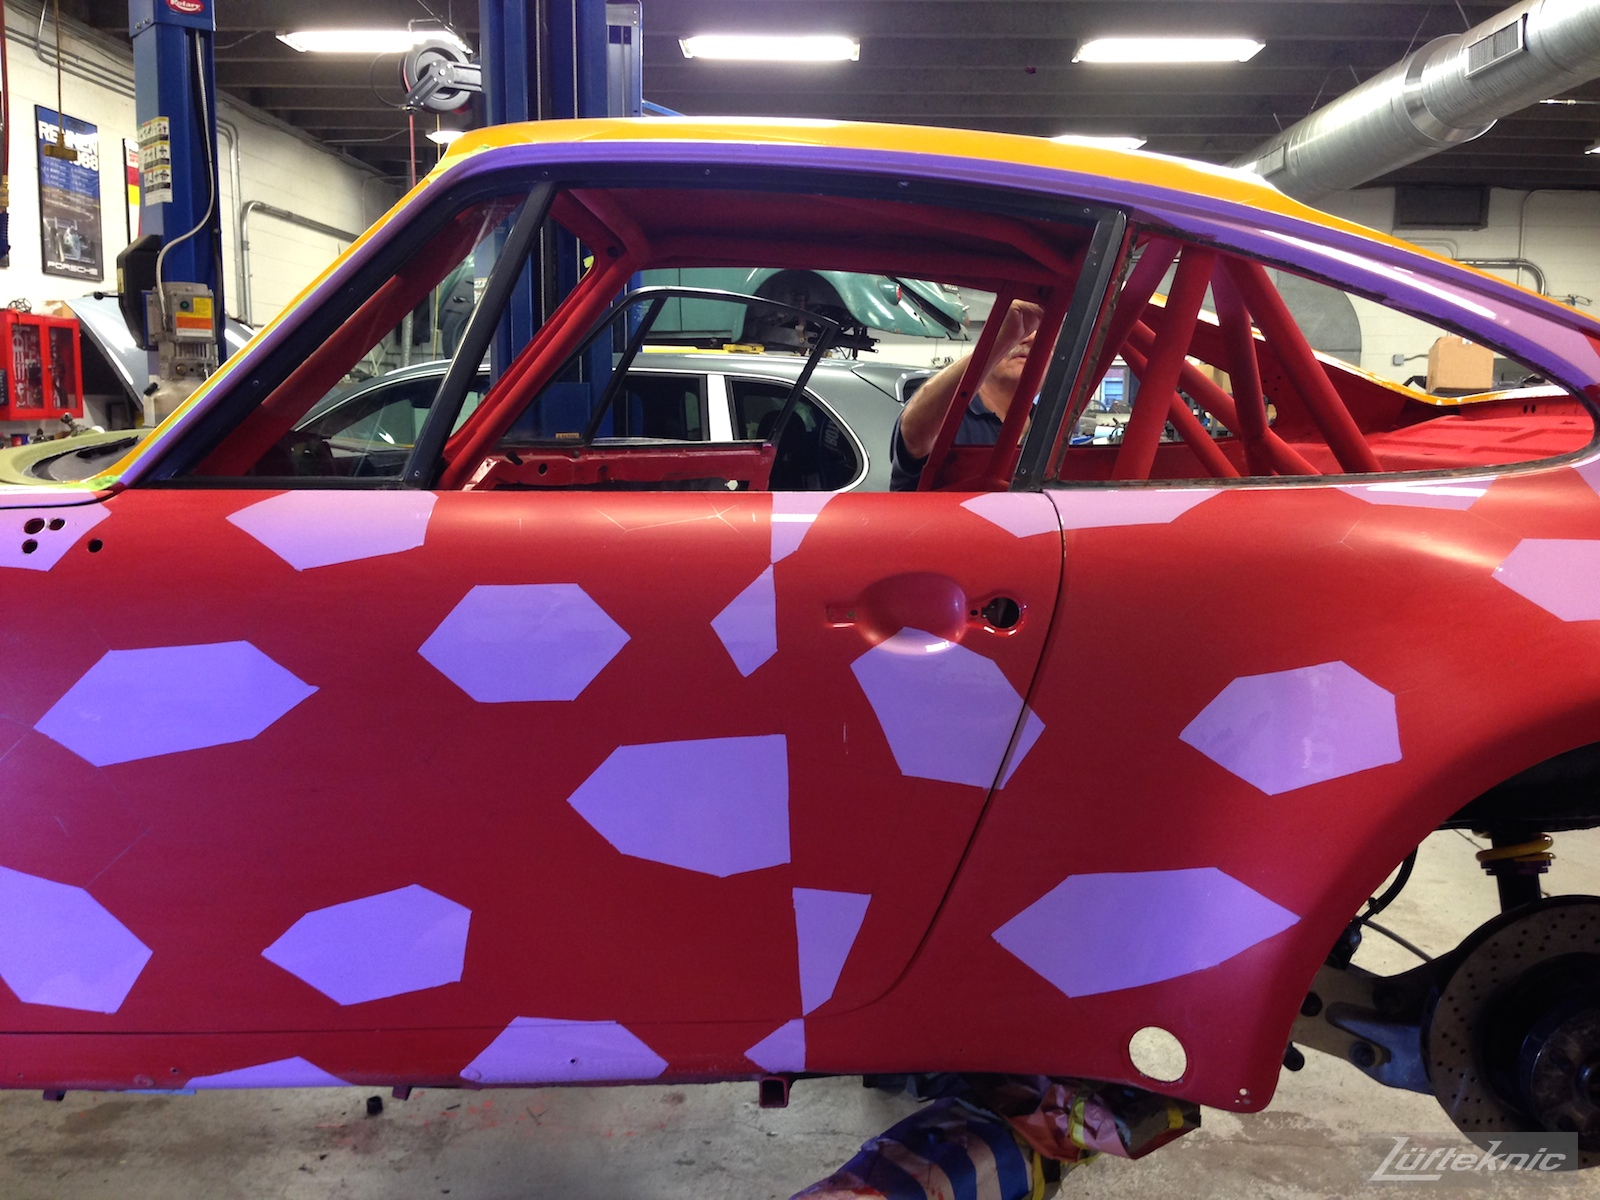 Lüfteknic #projectstuka Porsche 930 Turbo lozenge camouflage patten, with violet done and the rest of the car red.